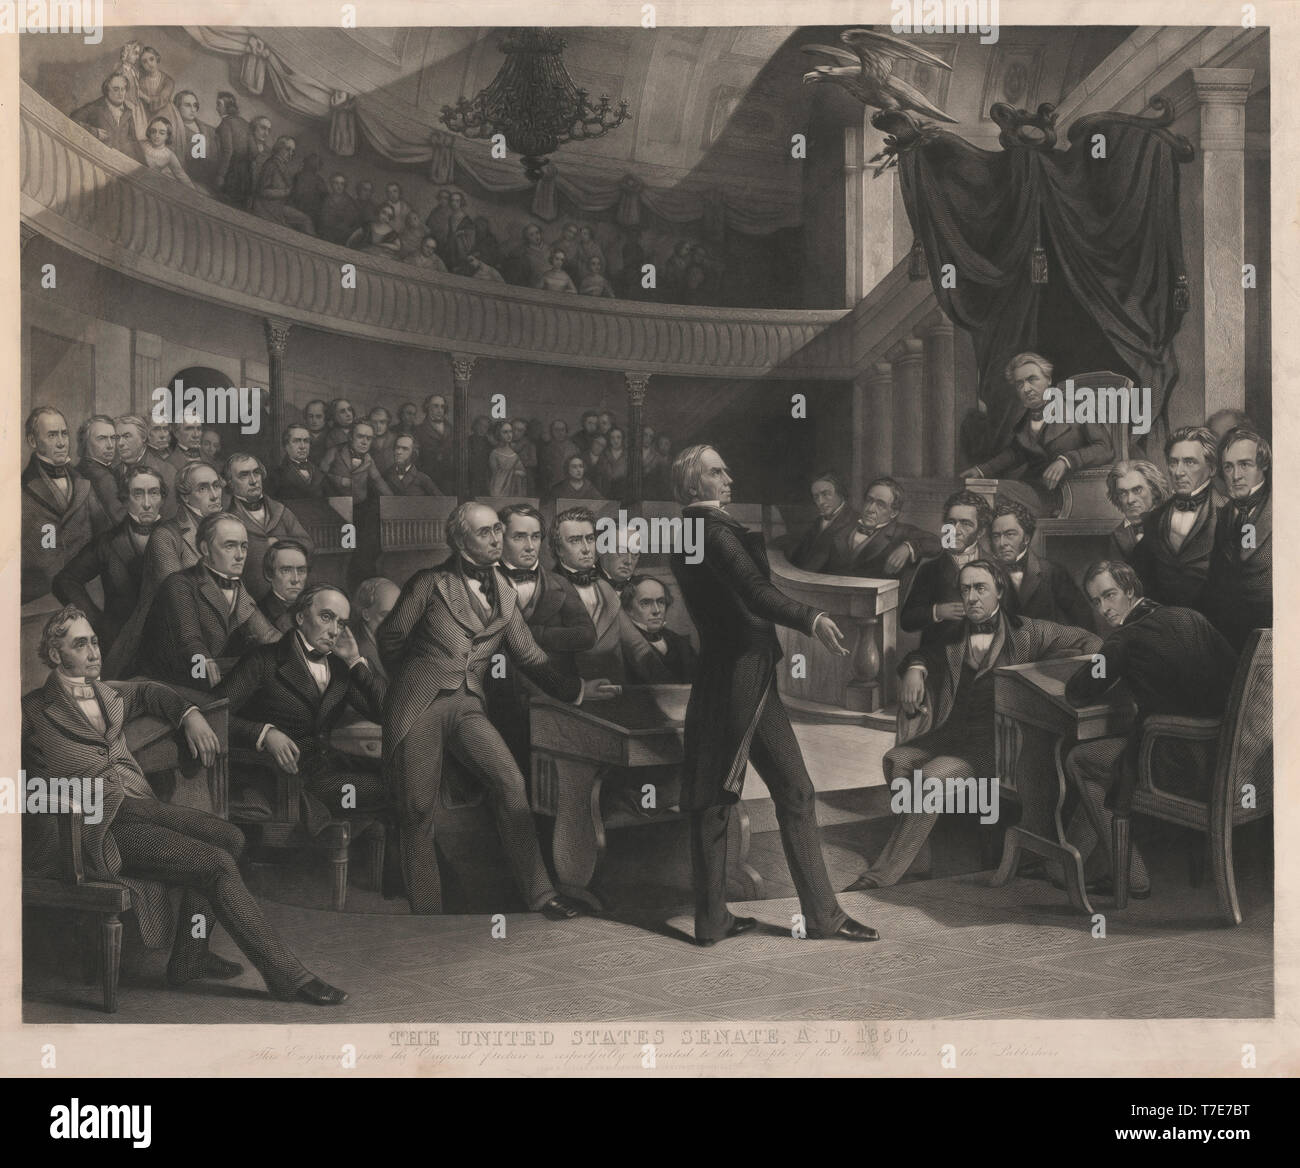 The United States Senate, A.D. 1850, Henry Clay Speaking about the Compromise of 1850 in the Old Senate Chamber, Drawn by P.F. Rothermel, engraved by R. Whitechurch, Published by John M. Butler and Alfred Long, 1855 - Stock Image